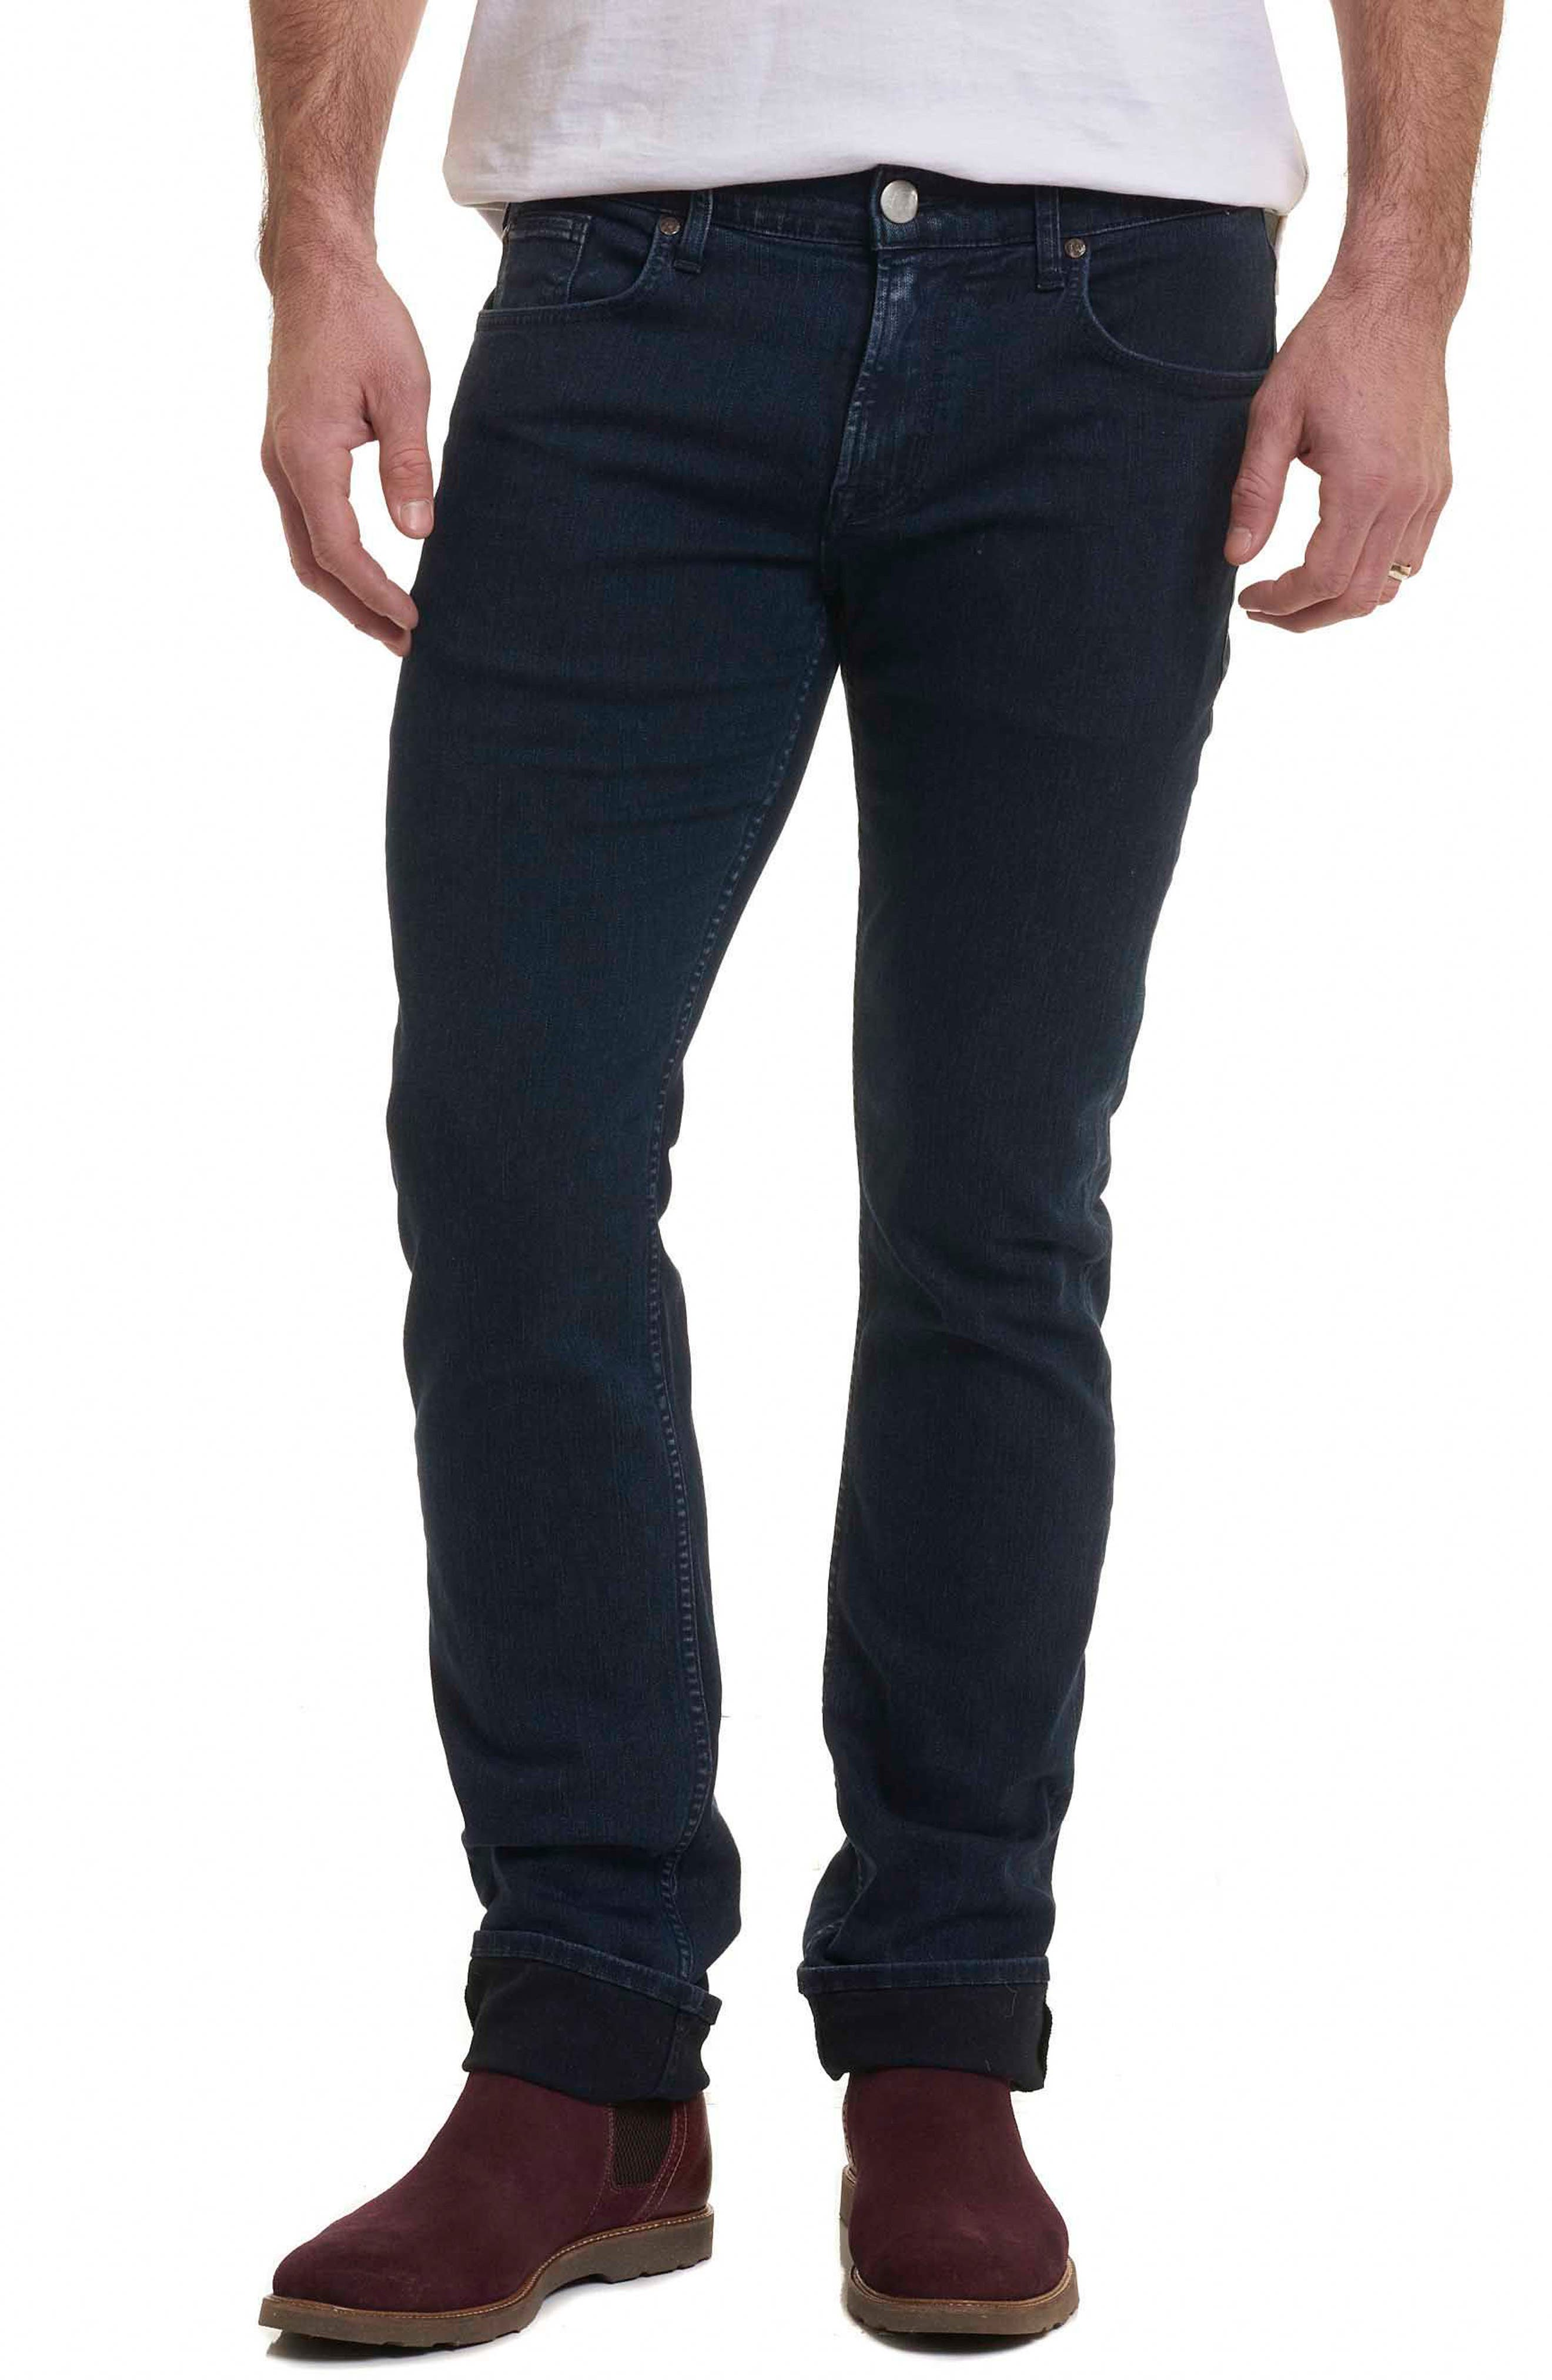 Adapt Classic Fit Jeans,                             Main thumbnail 1, color,                             Indigo